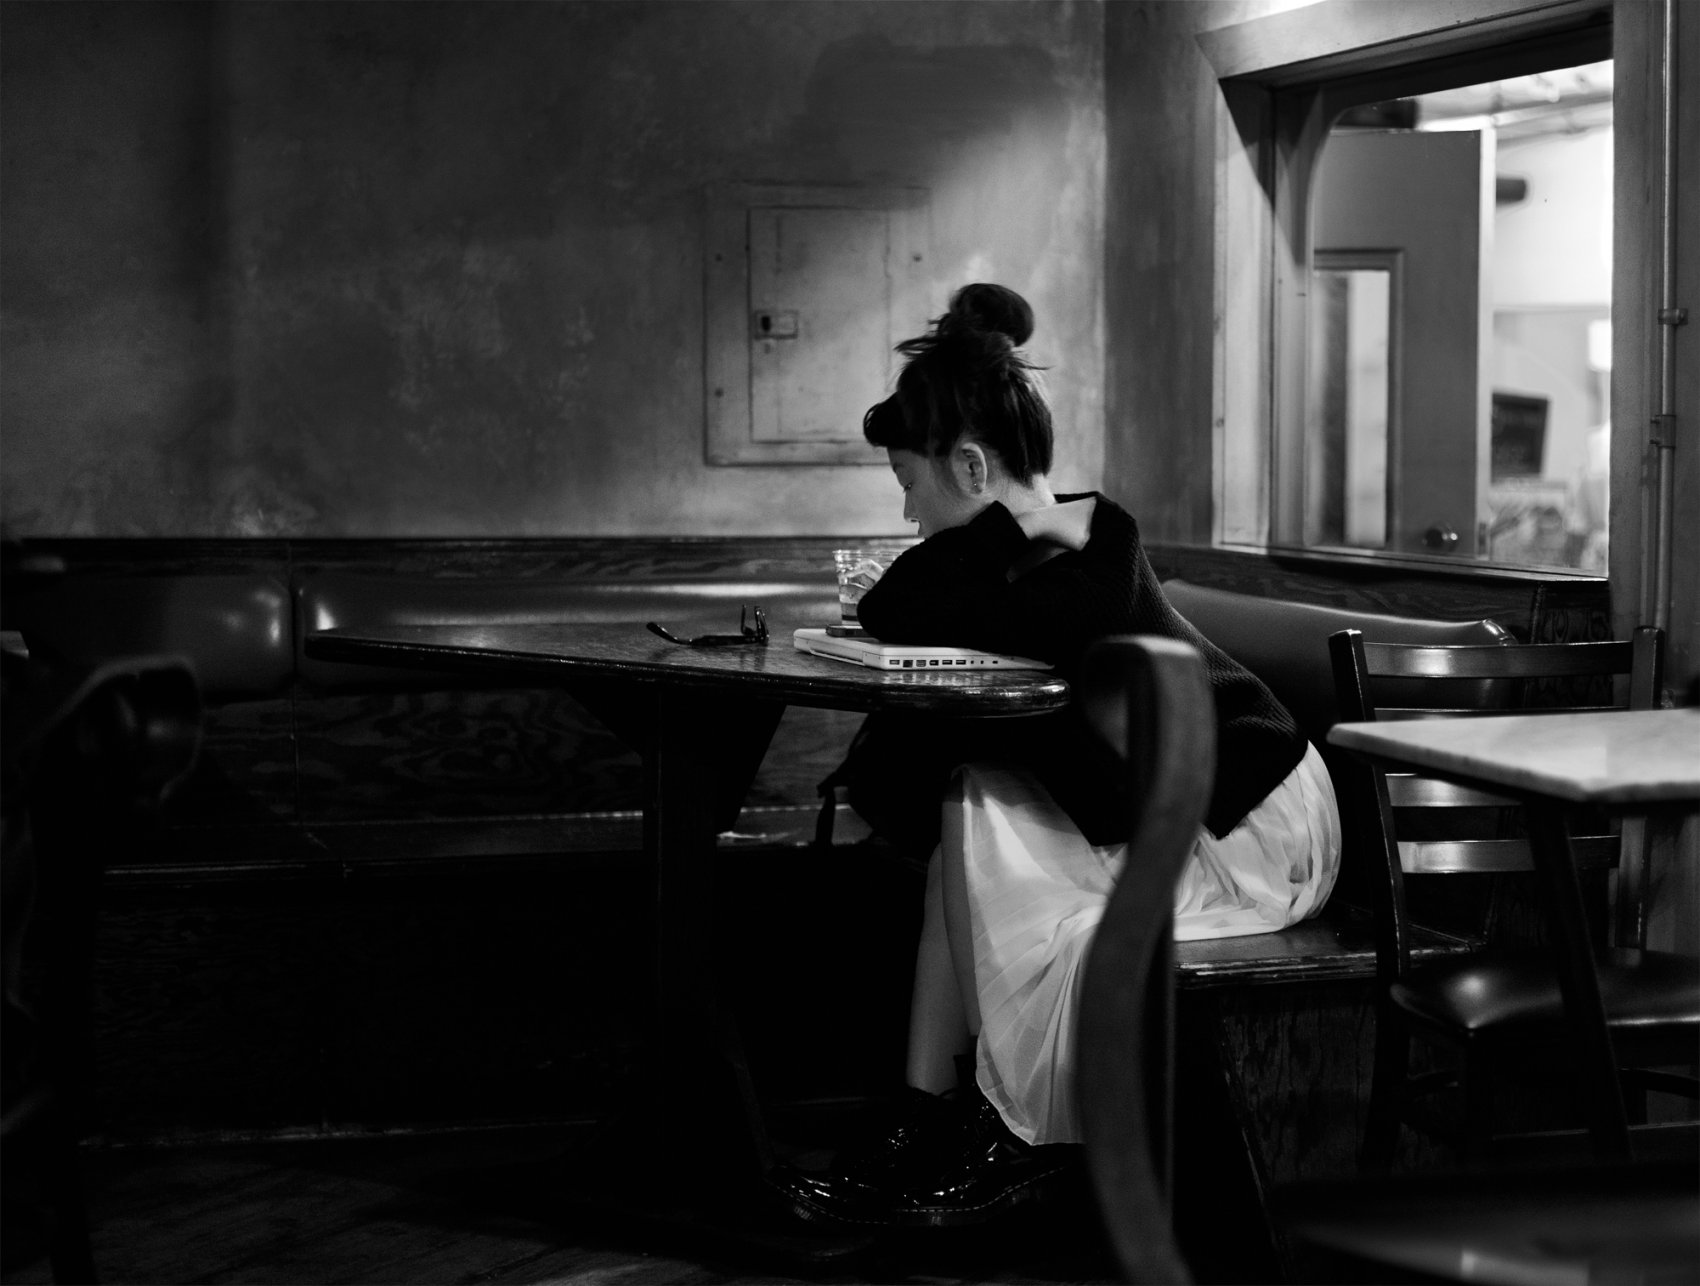 girl at a coffee place (2013) - Alex Contell